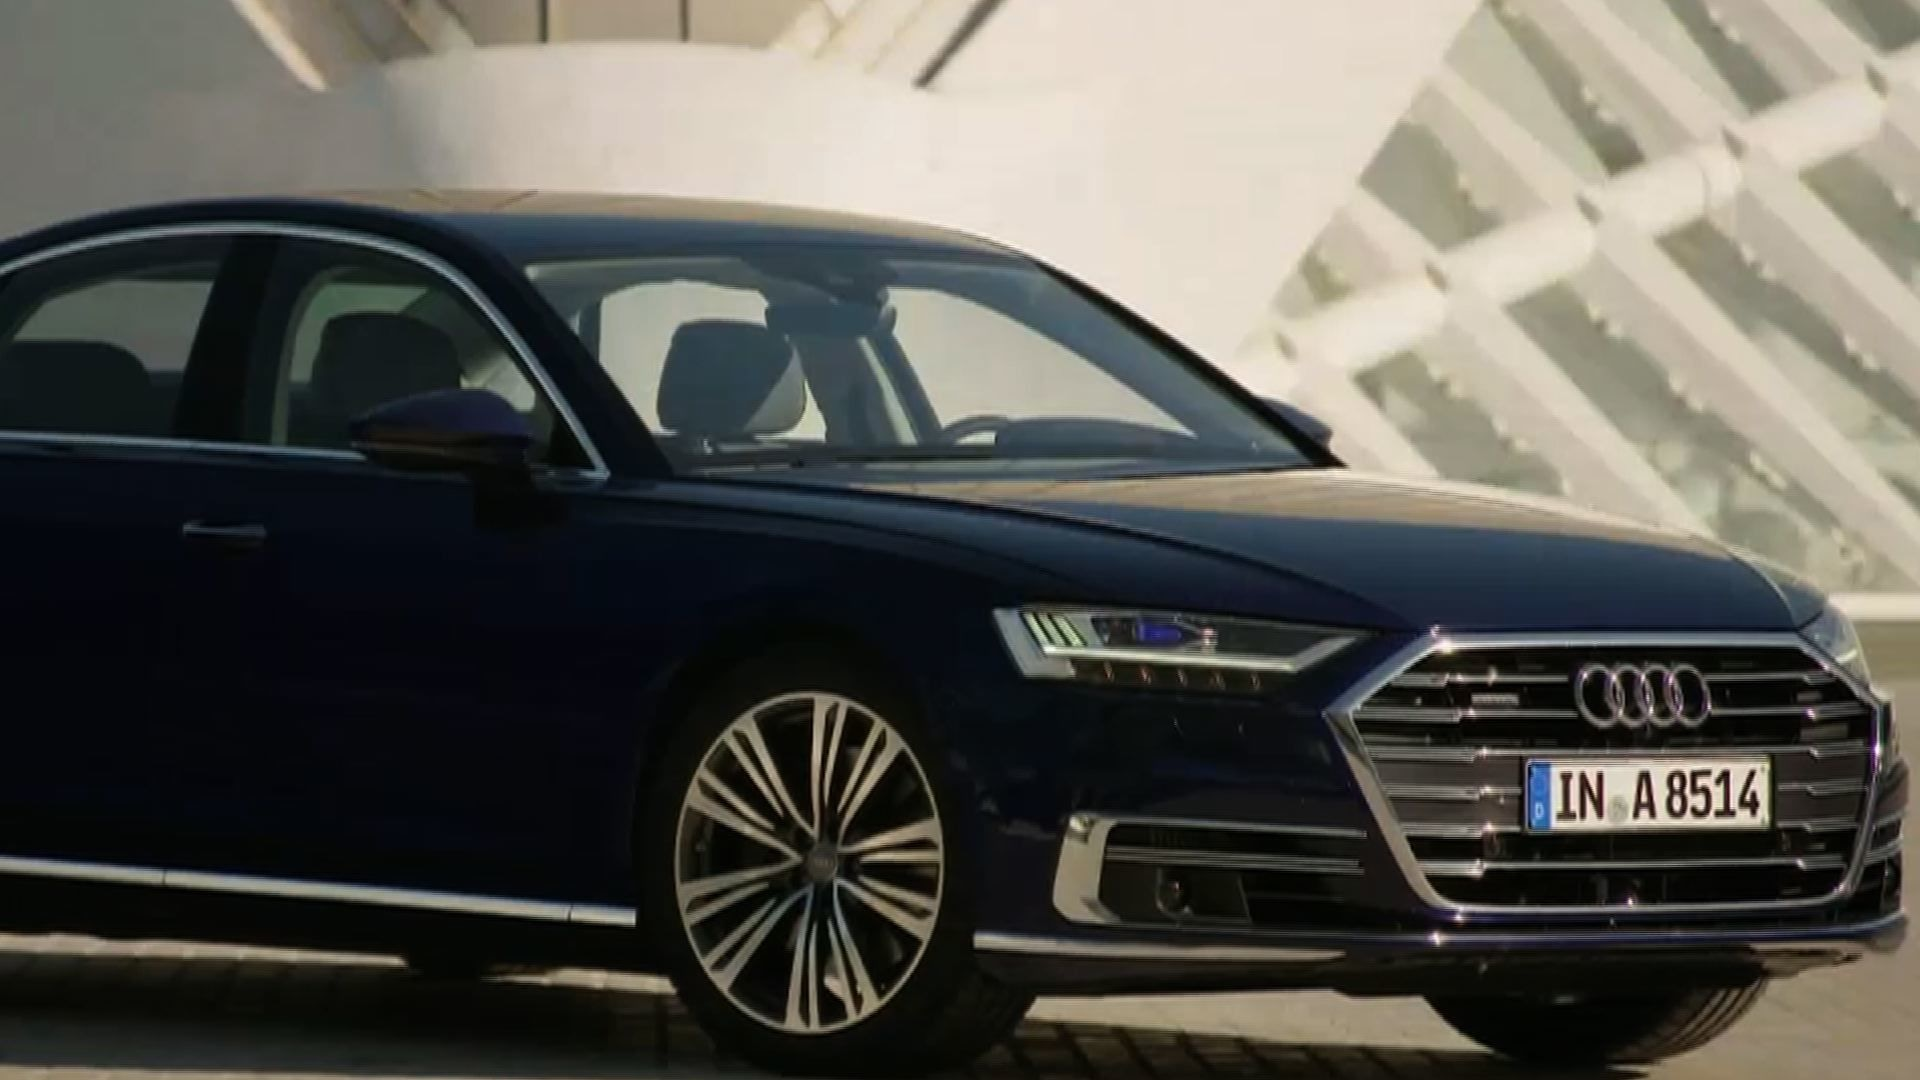 The Audi A8's innovative new features put safety first - World